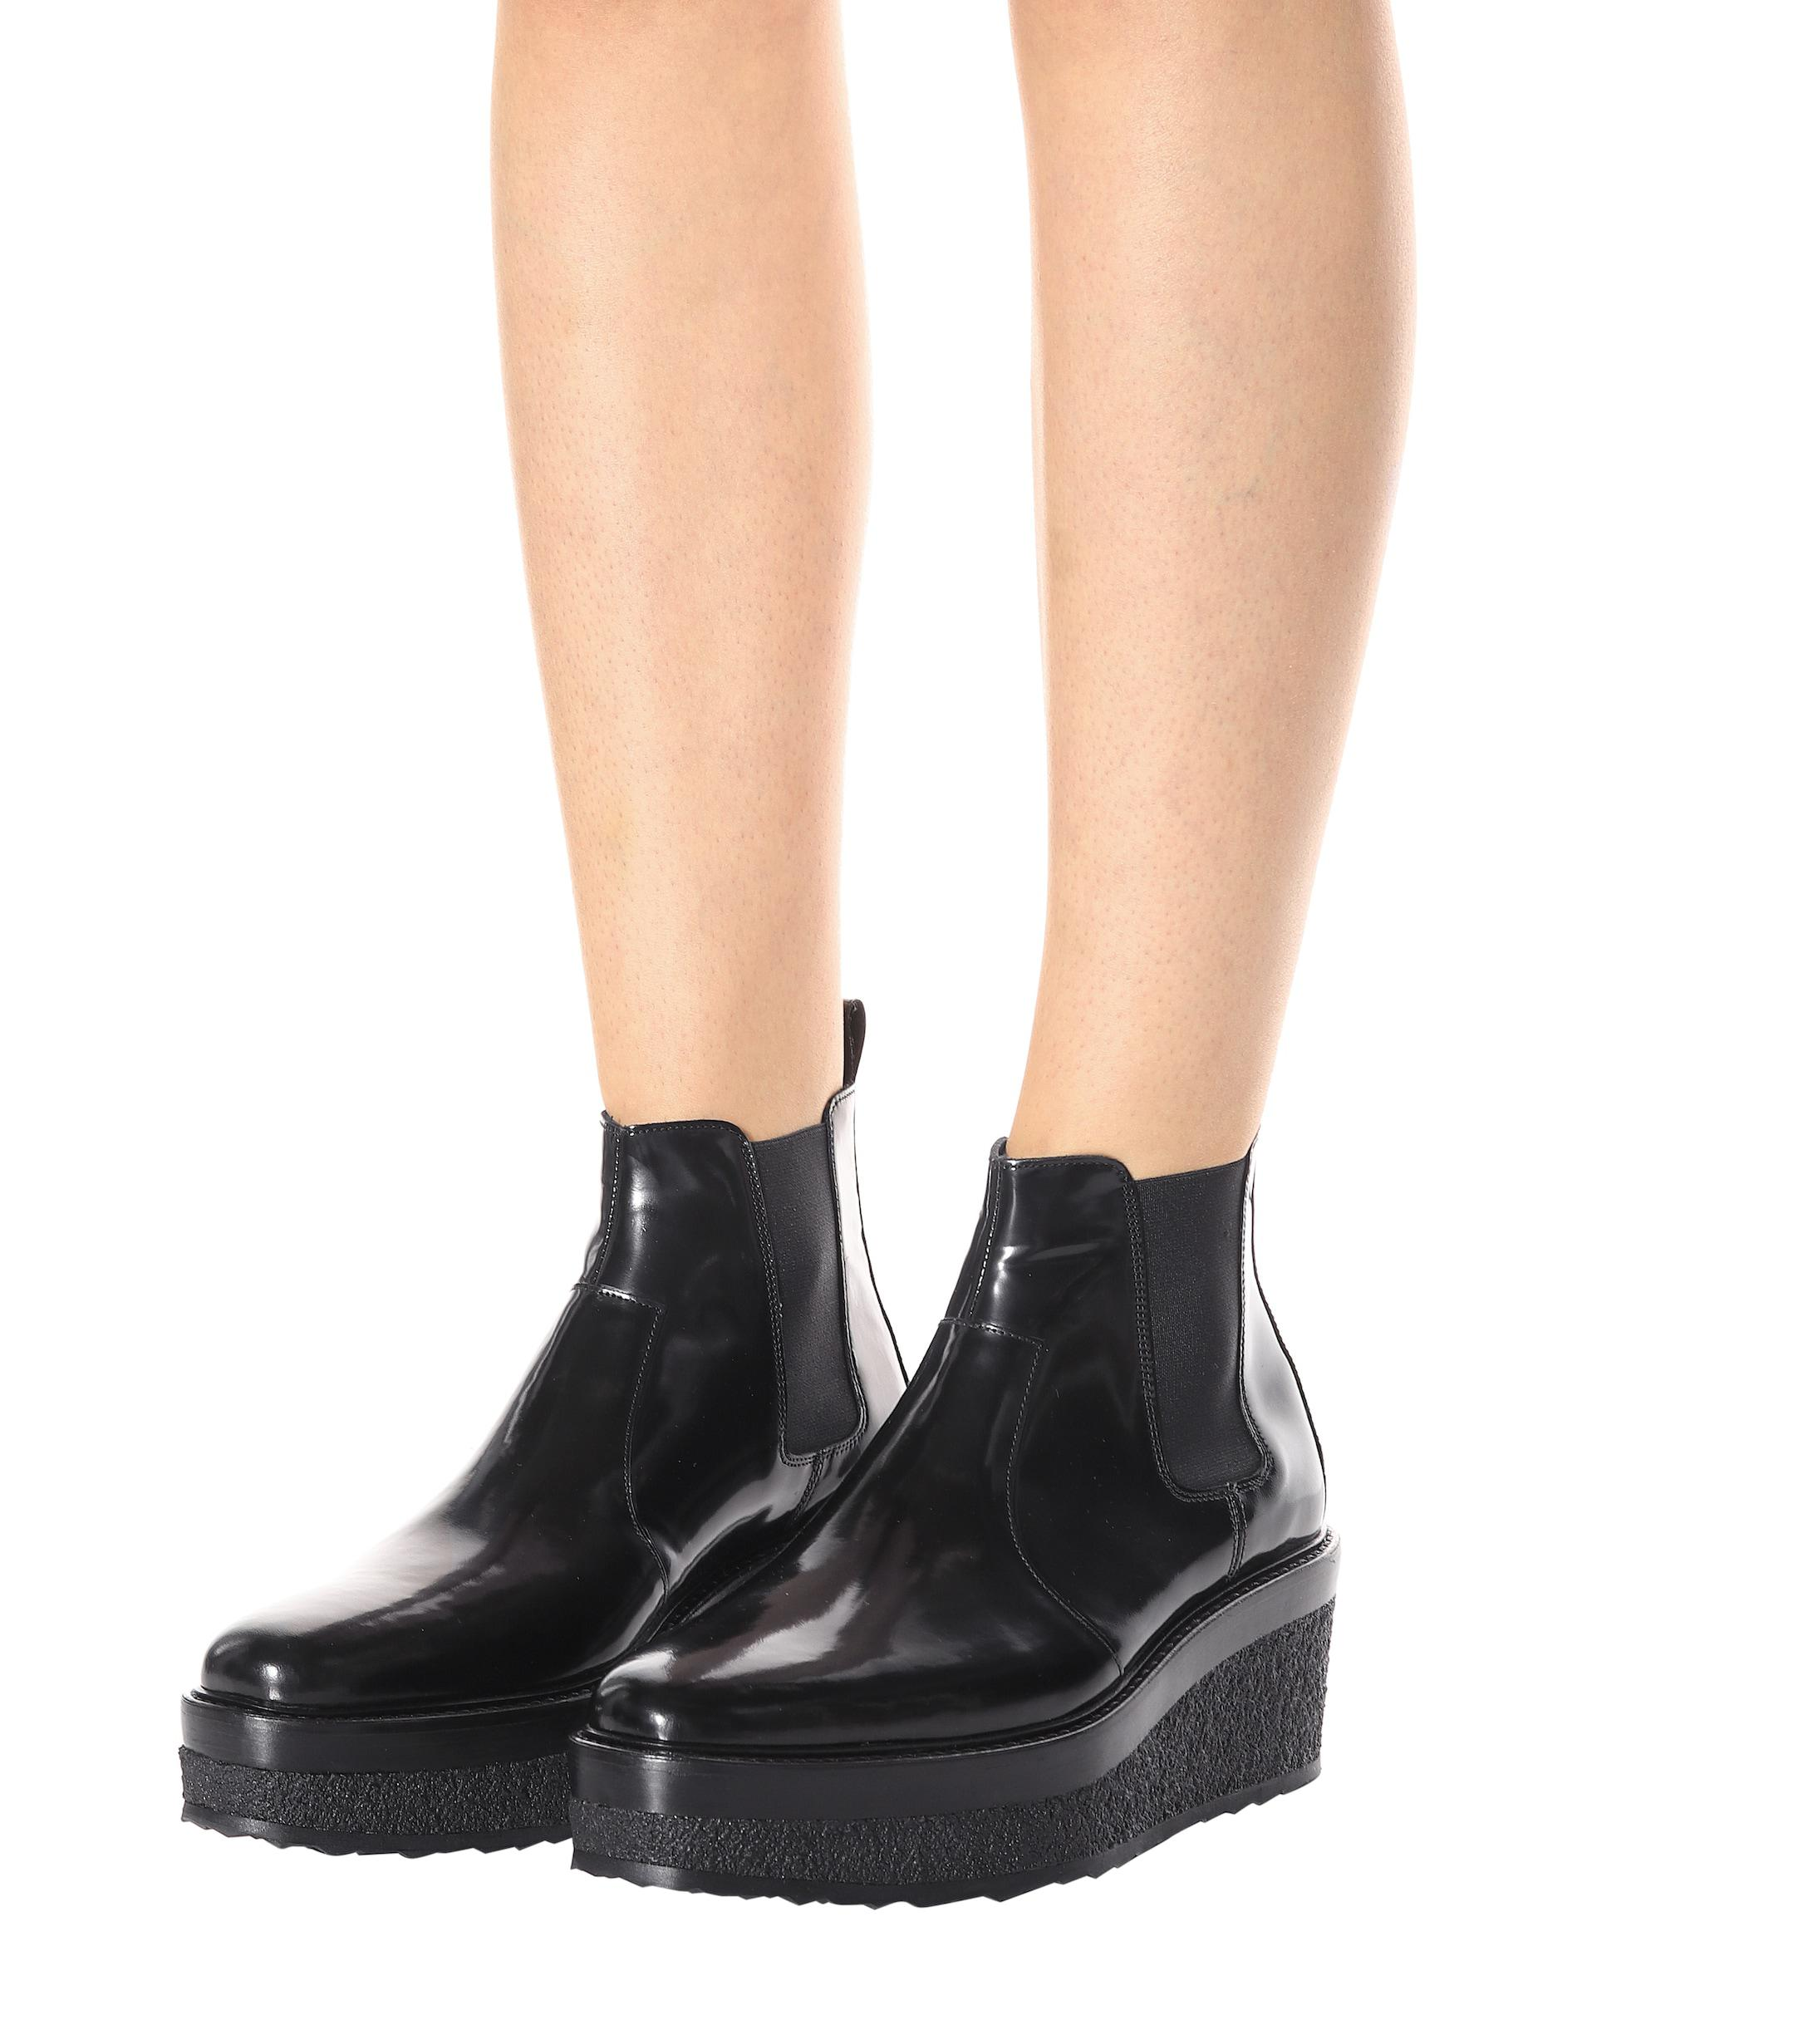 See more Pierre Hardy Wedges Ankle BOOTS in Black Shiny